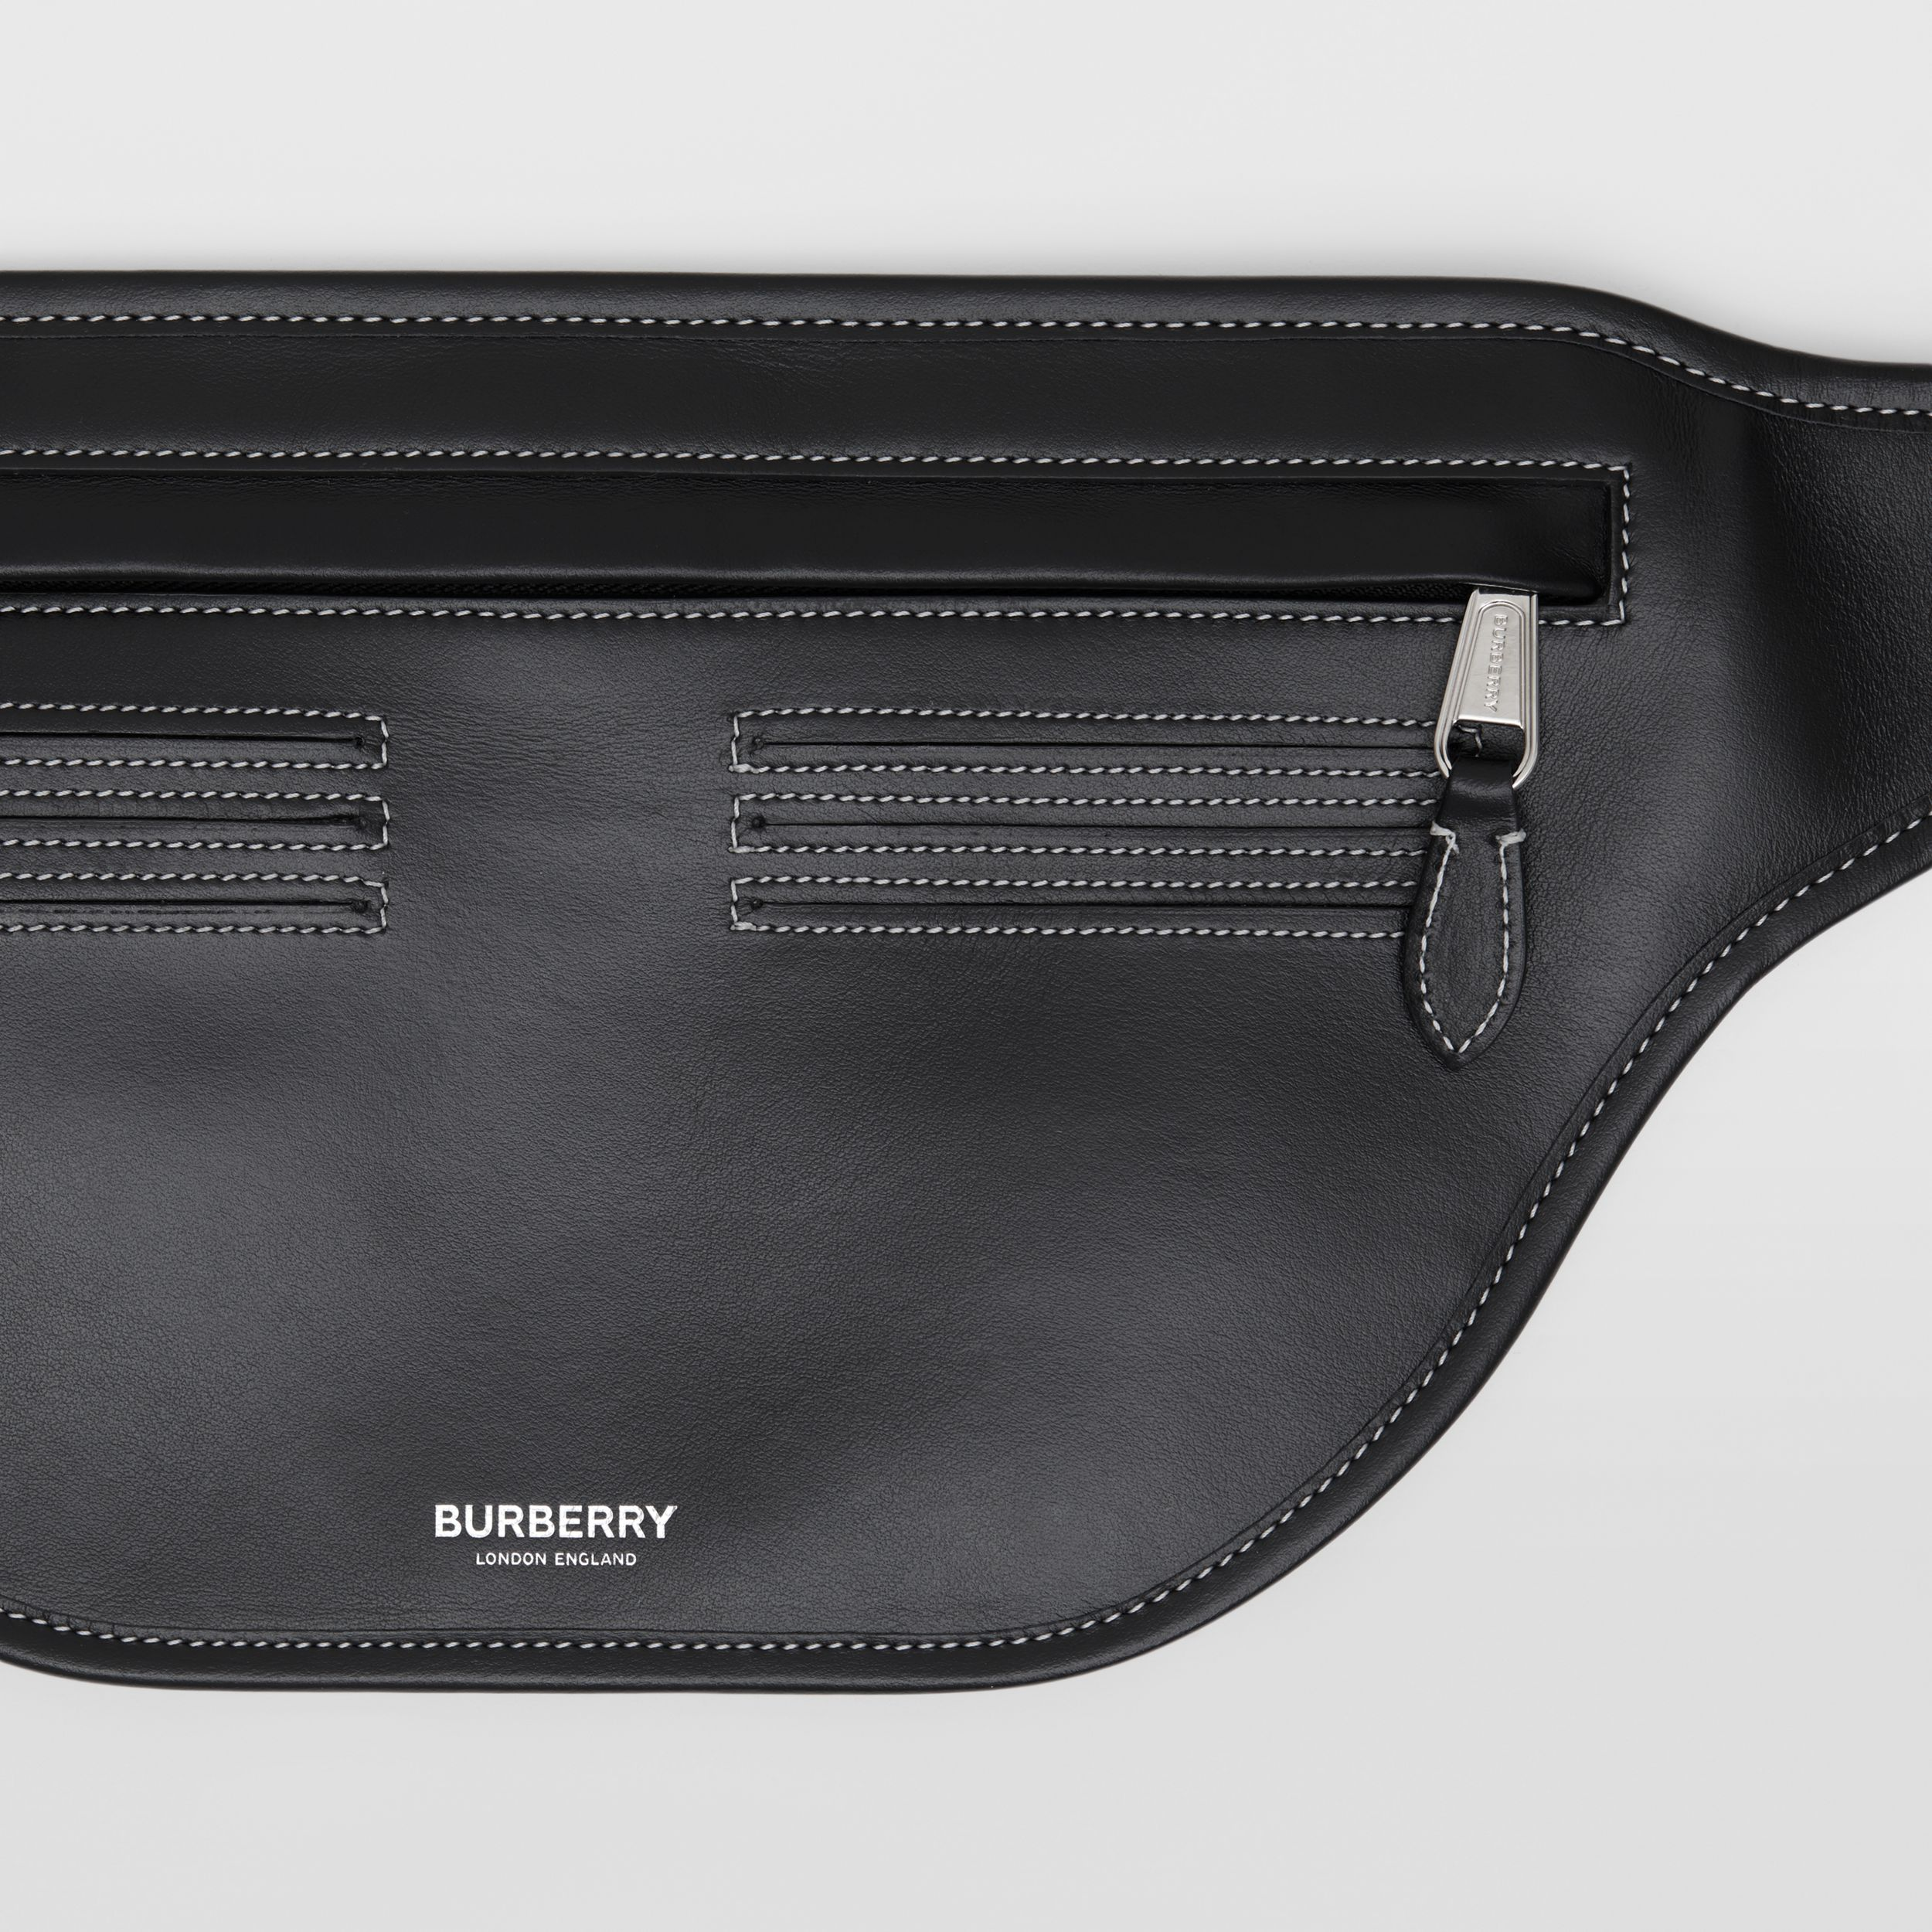 Topstitched Leather Brummell Bum Bag in Black | Burberry - 2